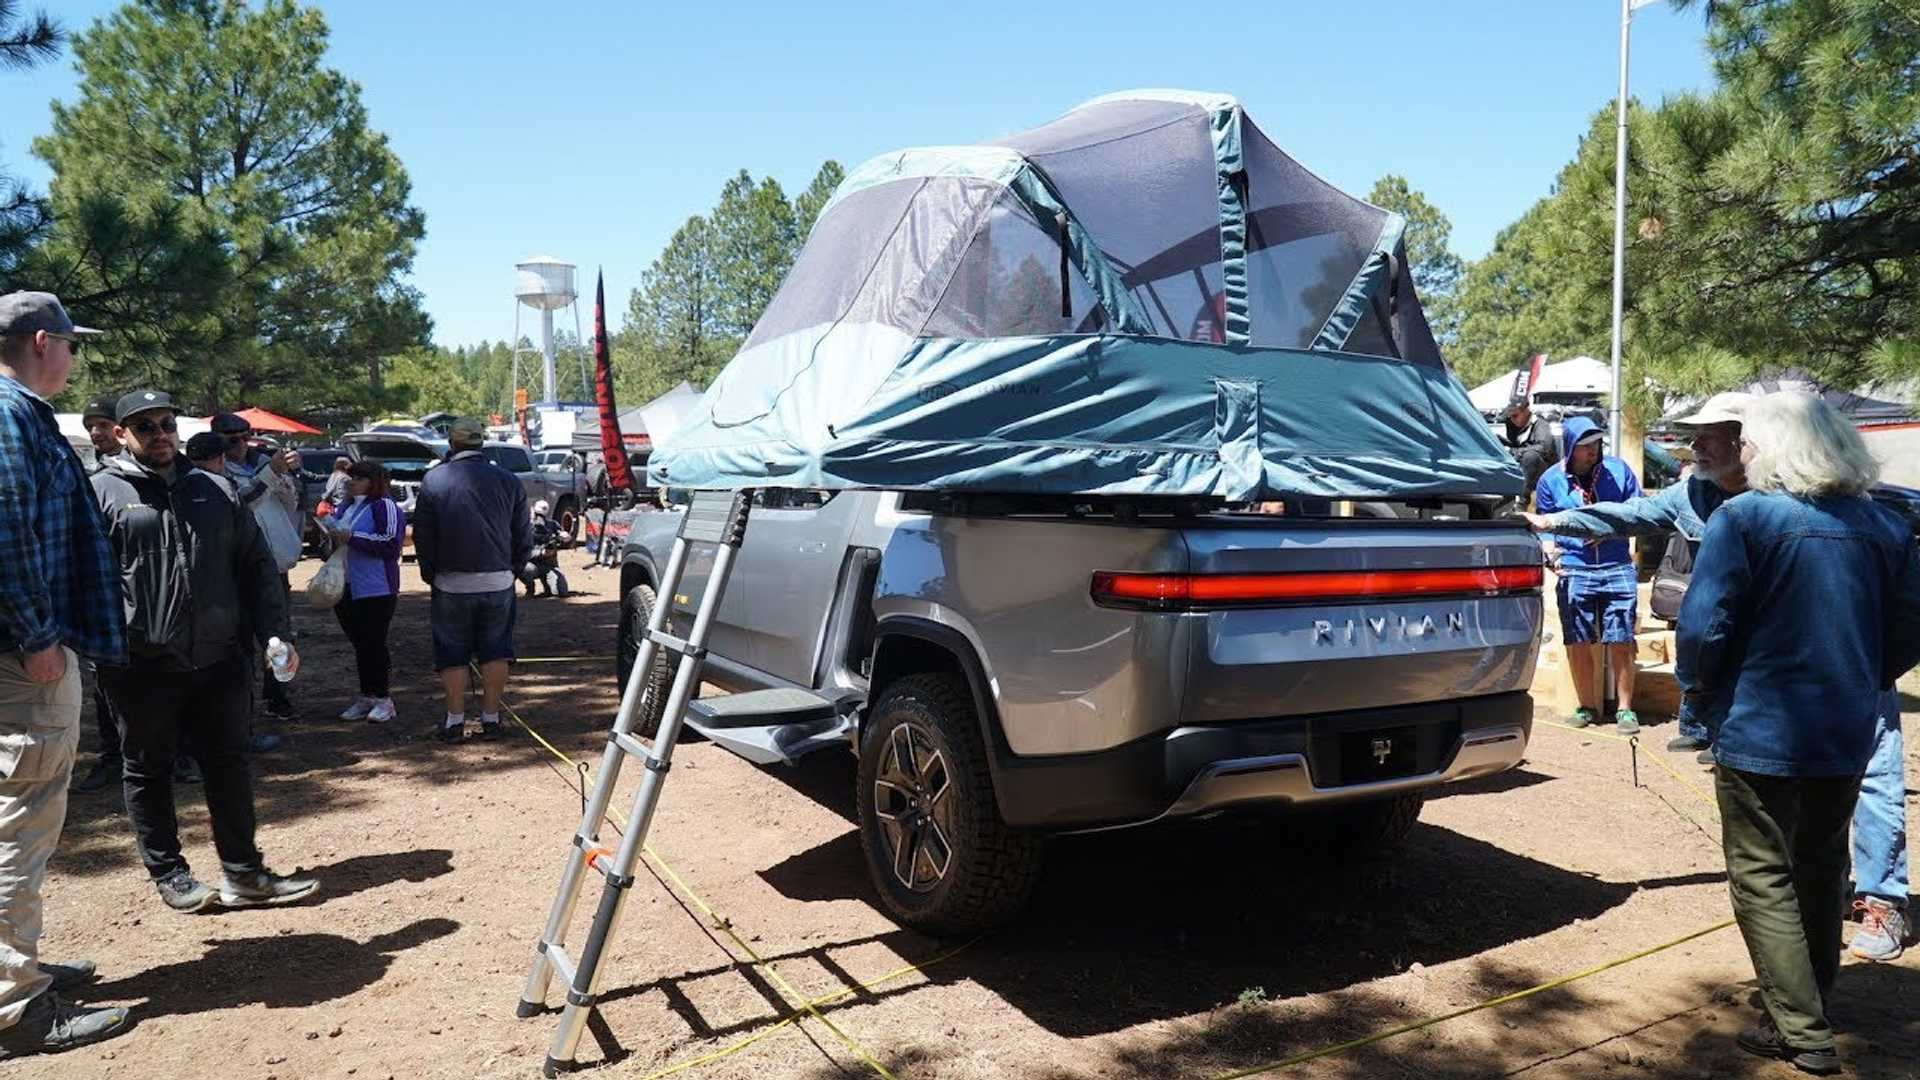 Rivian R1T Electric Pickup Truck Walk Around Video From Overland